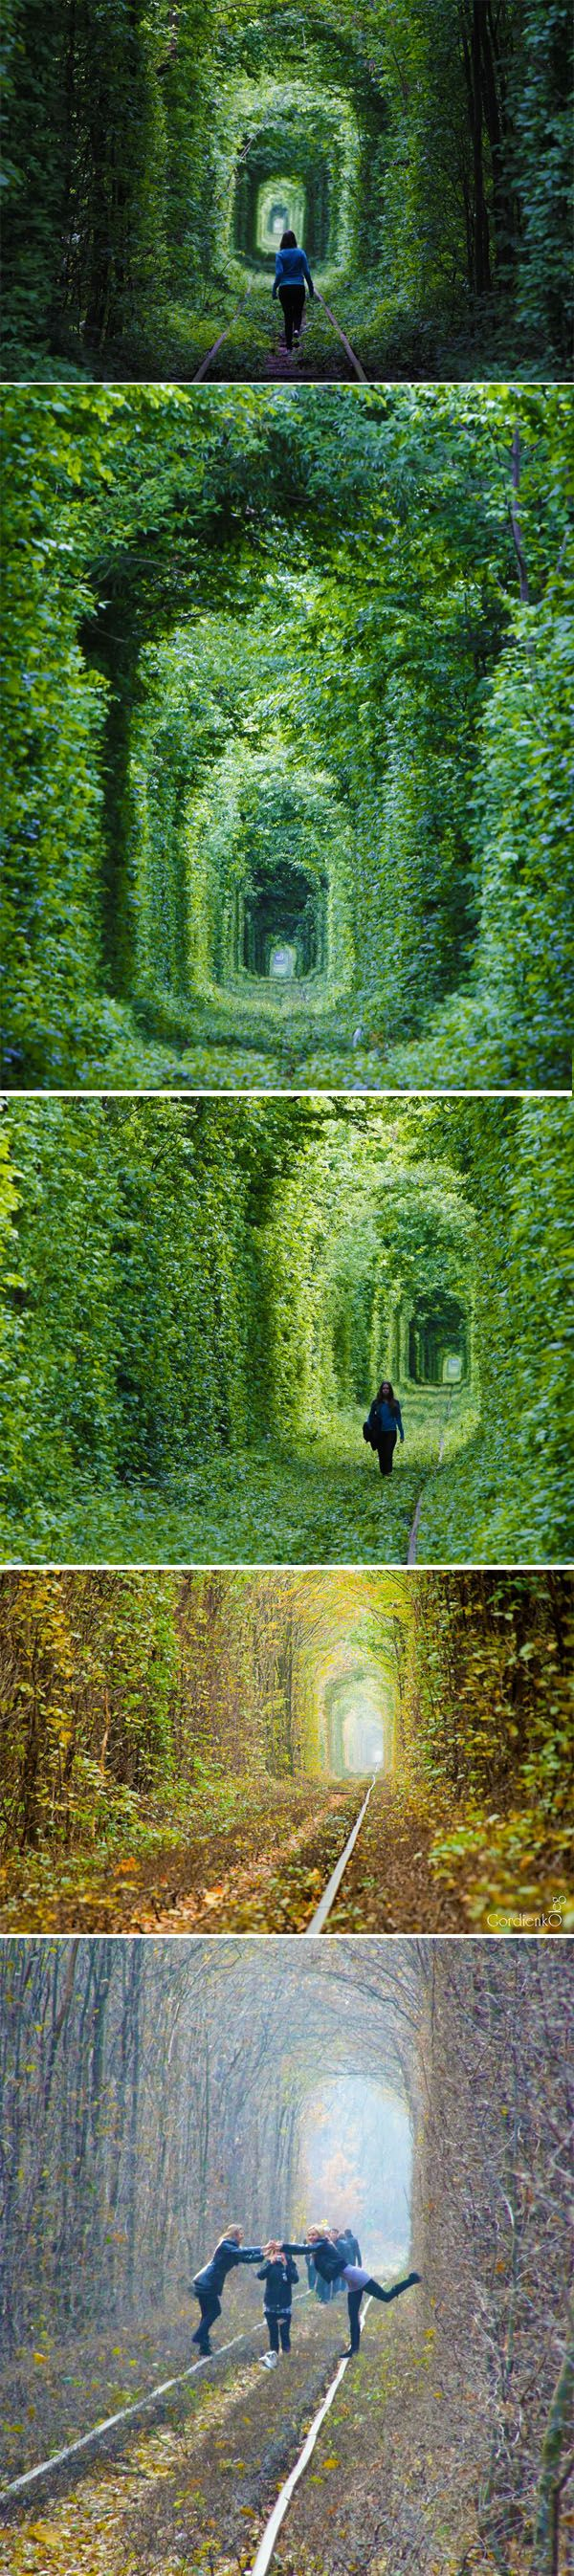 """Тунель кохання : Tunnel of Love""  ::  located in Kleven, Ukraine  (Yet, another odd and unique place on earth.)"